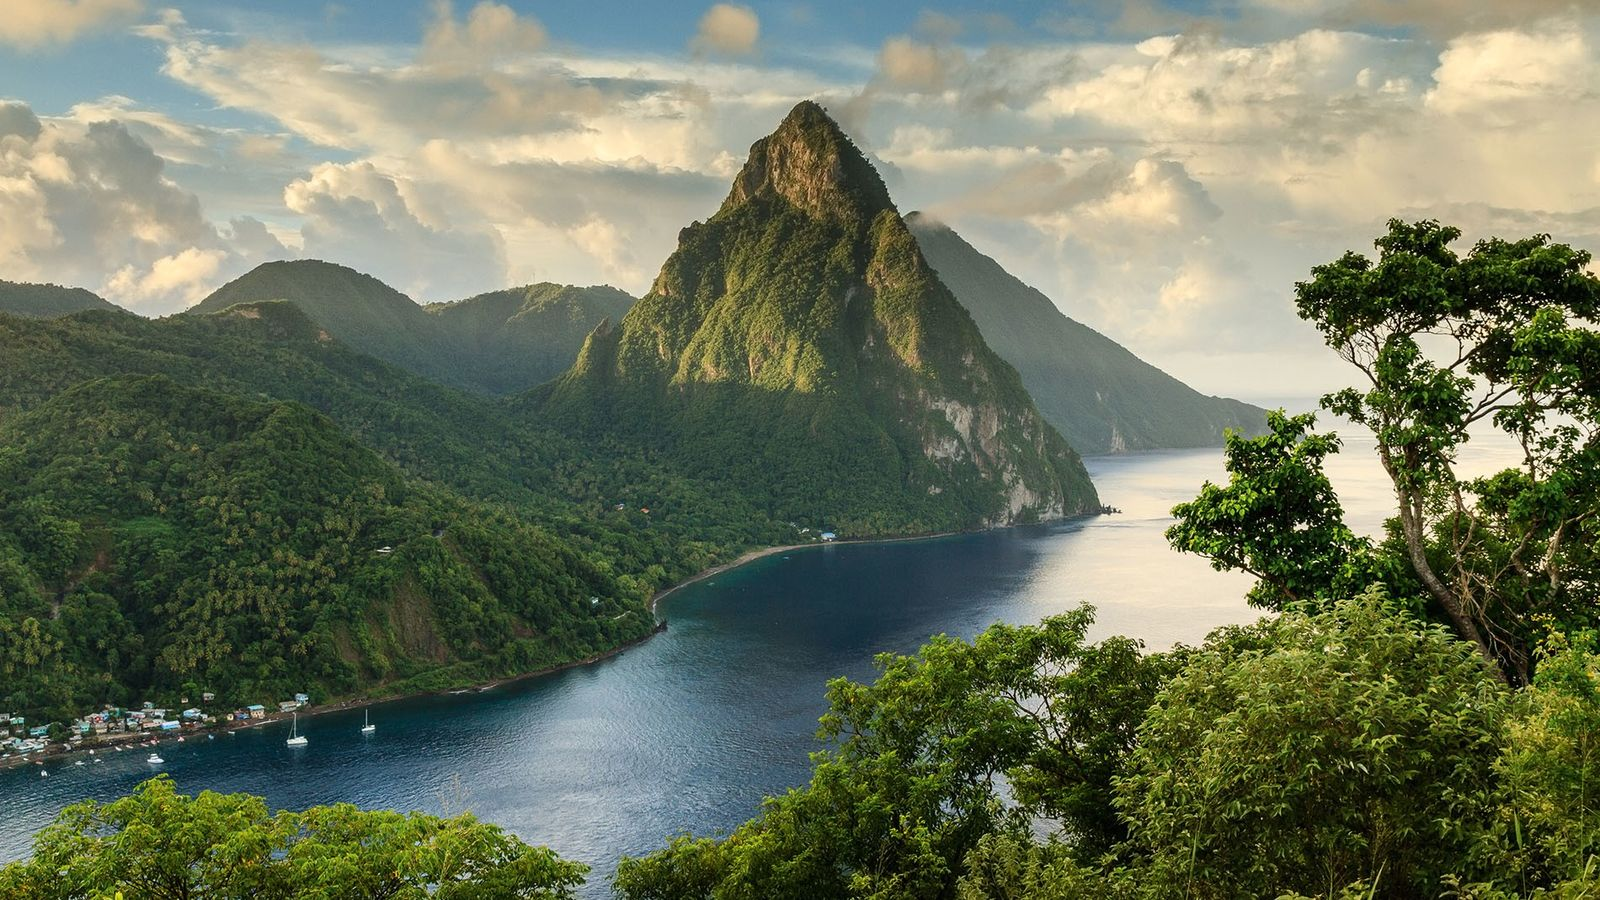 A view of the Pitons peaks, Petit Piton andGros Piton.